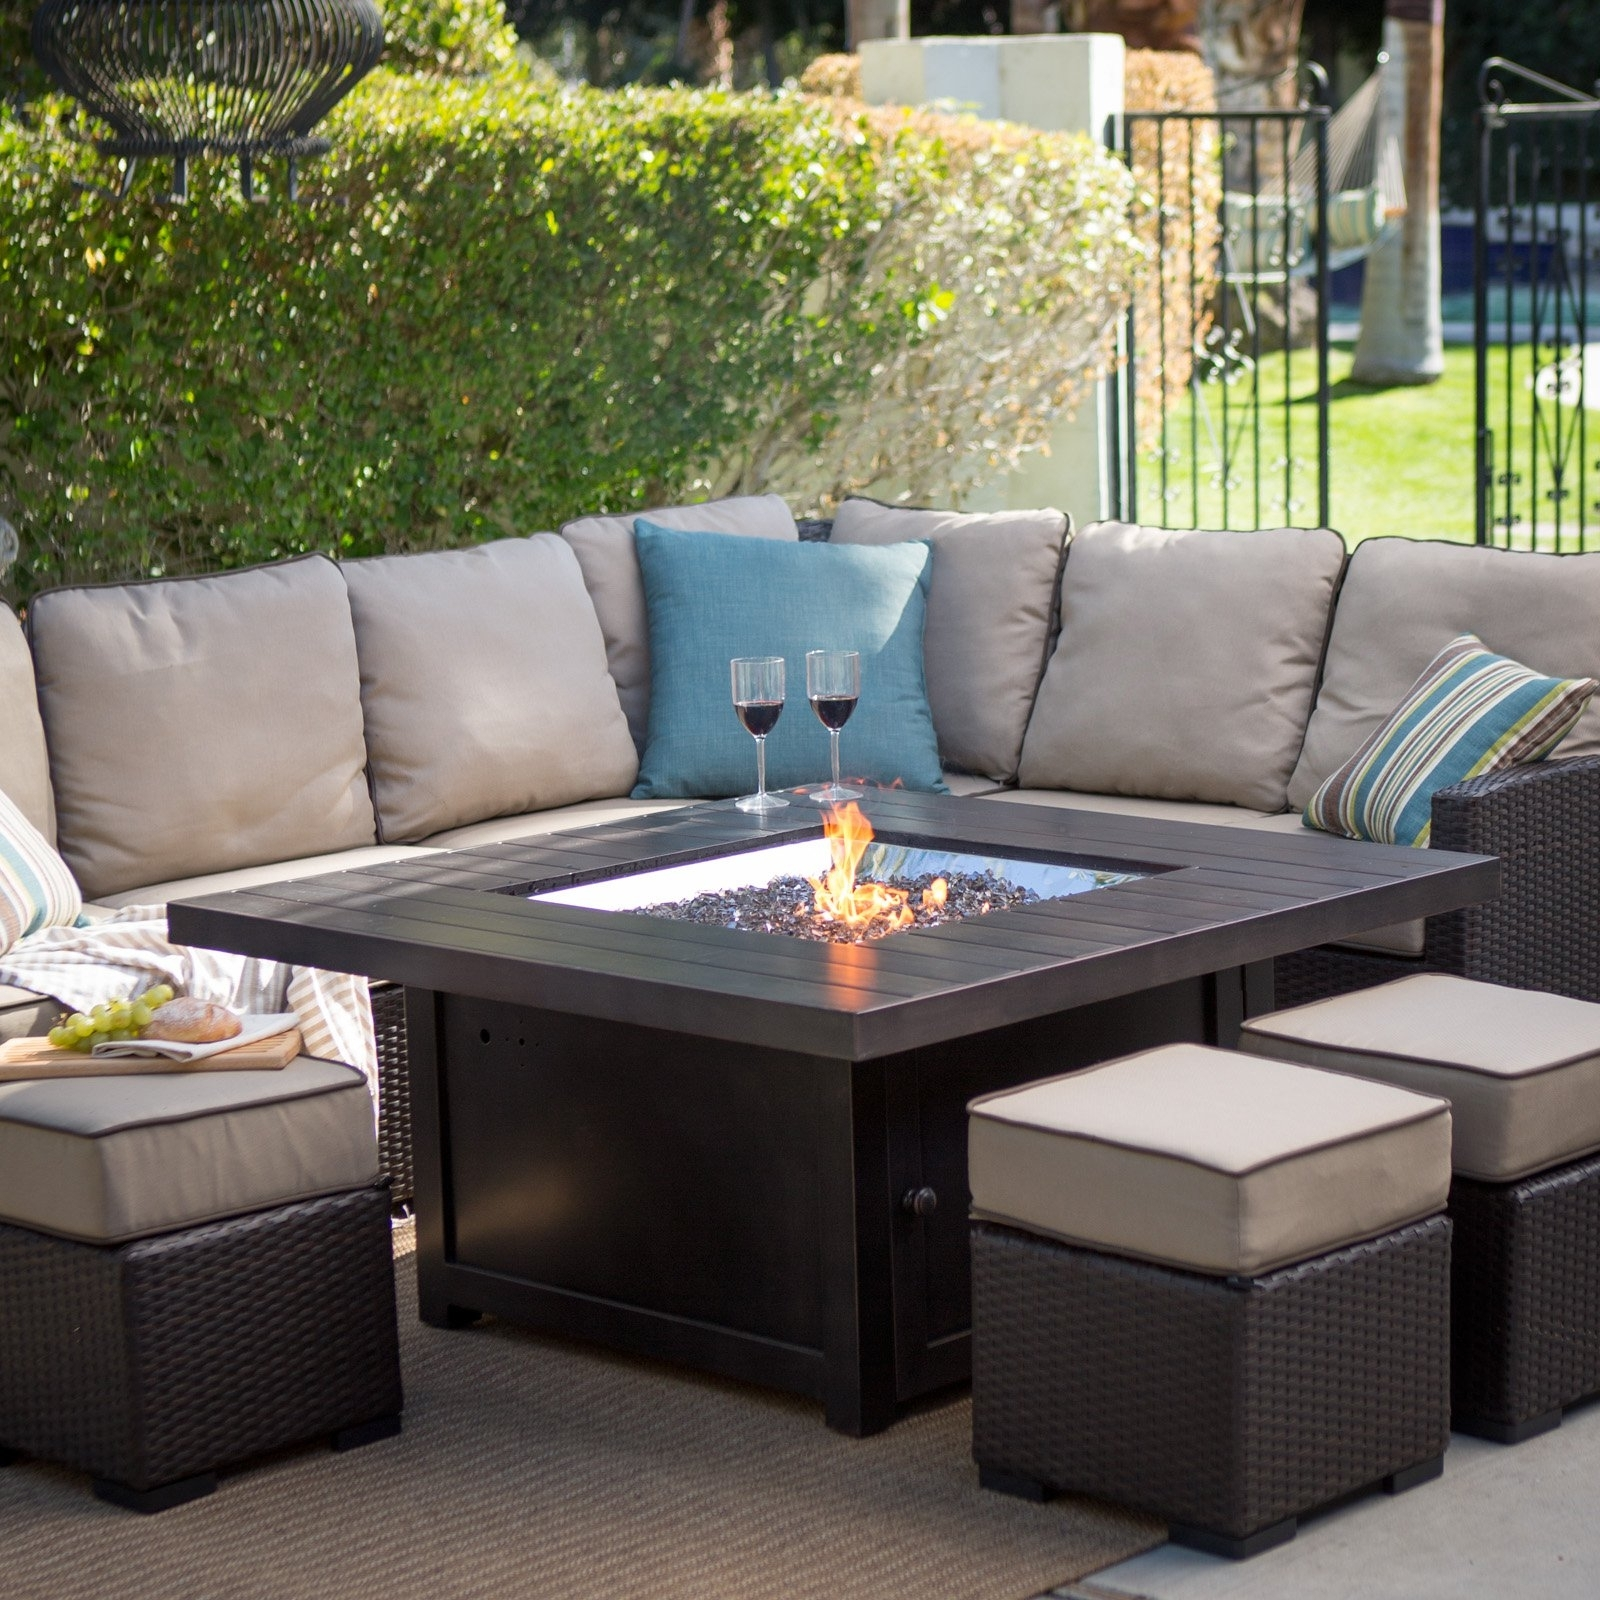 Well Known Patio Conversation Sets With Fire Pit With Furniture: High Quality Patio Furniture Columbus Ohio And Fire Pit (View 20 of 20)